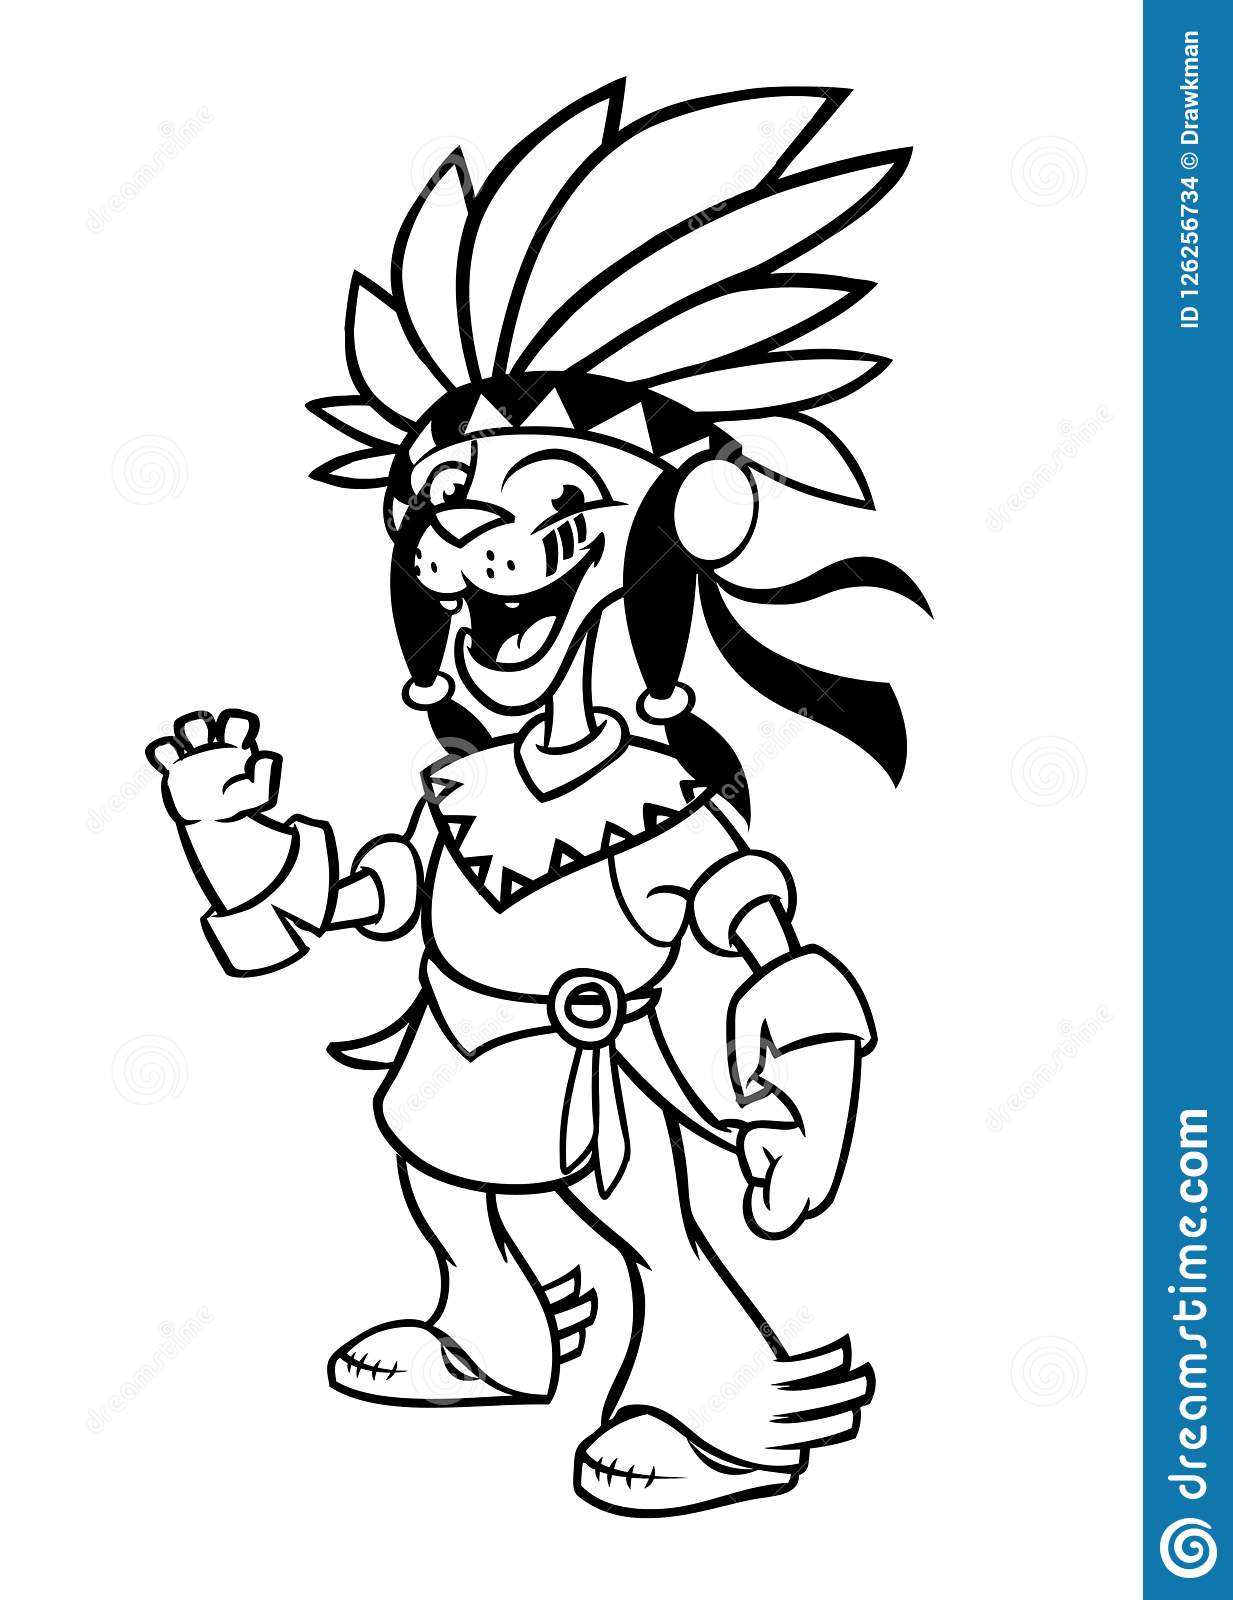 hight resolution of cartoon native american indian character illustration clipart for coloring book